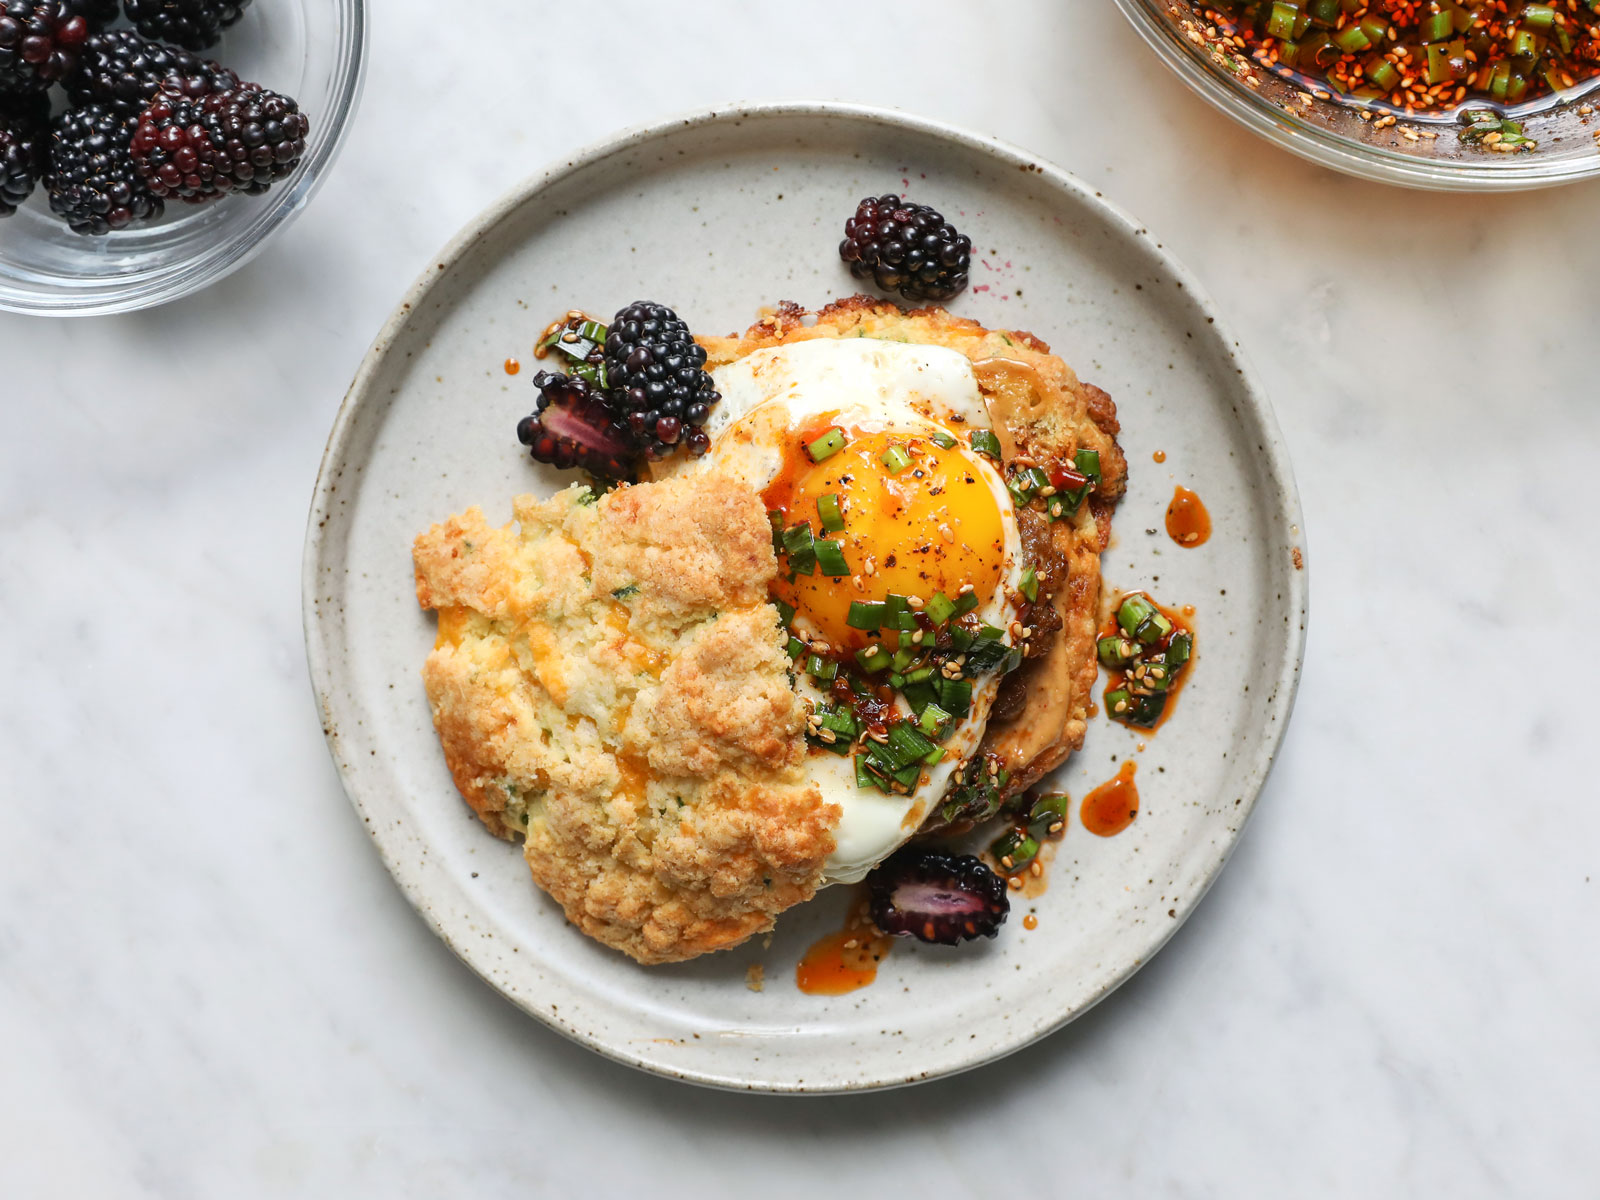 Stephanie Izard's Secret for Excellent Biscuits